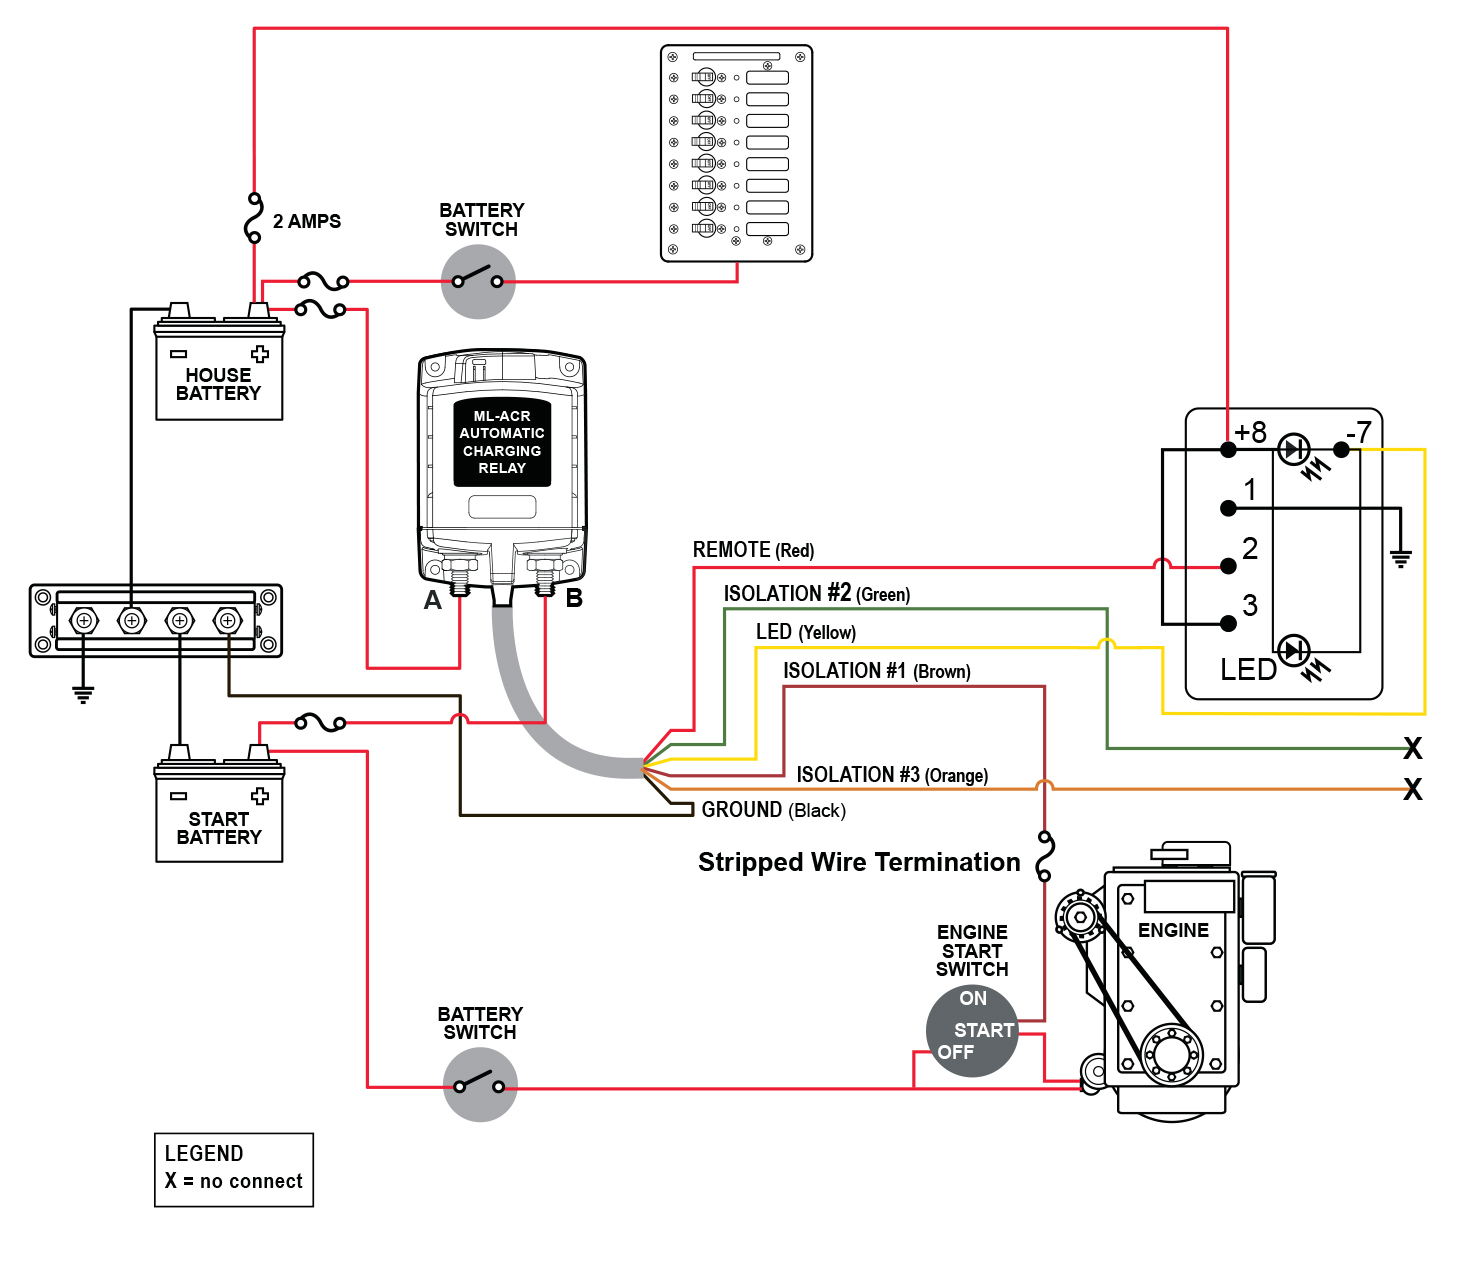 hight resolution of blue sea ml acr automatic charging relay wiring diagram